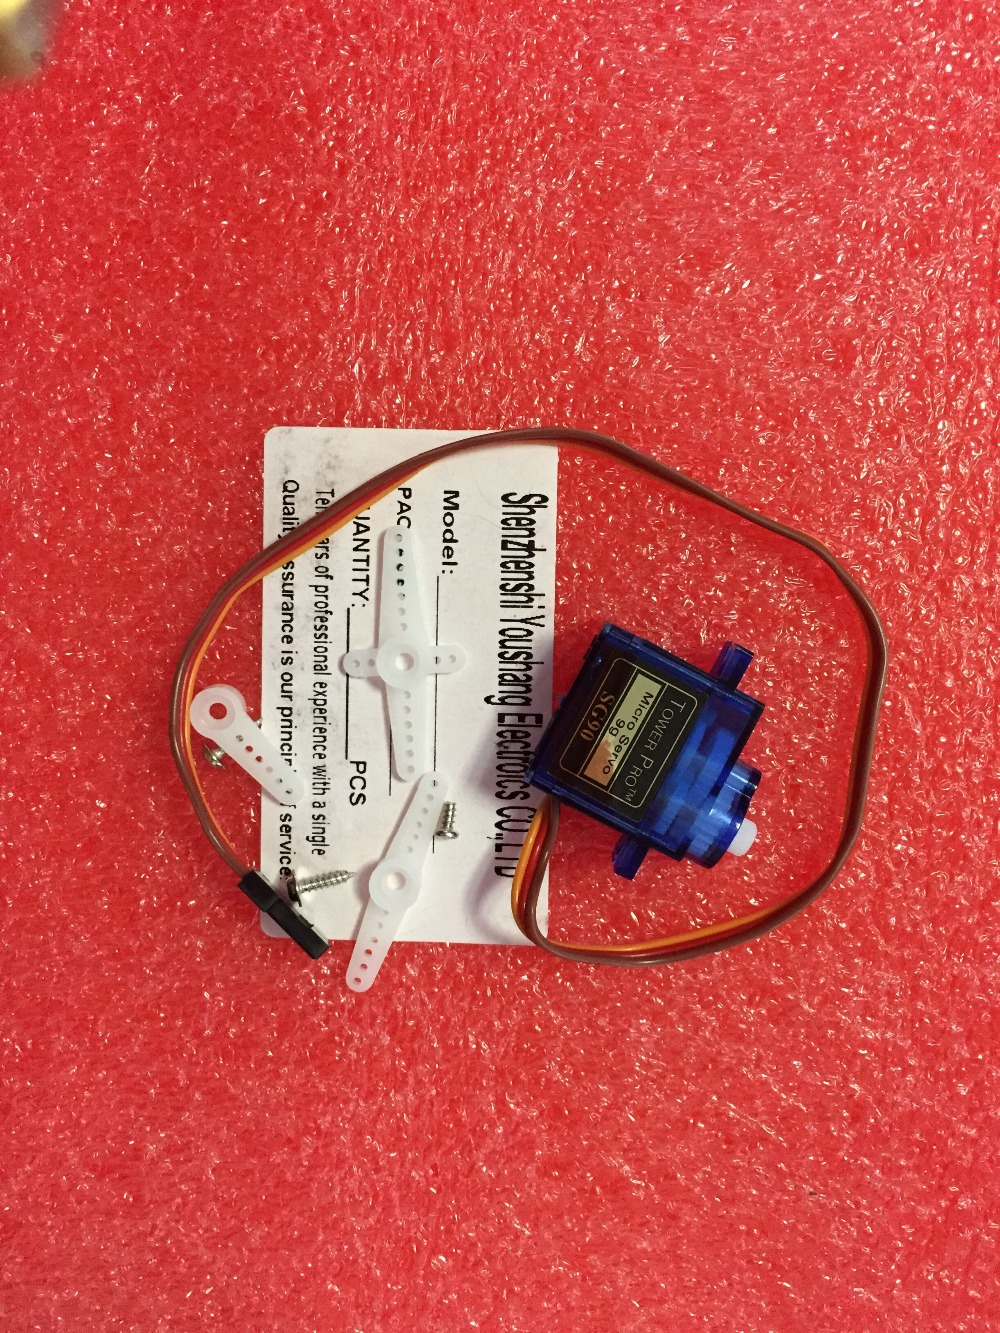 100PCS/1LOT  Free Shipping Rc Mini Micro 9g 1.6KG Servo SG90 for RC 250 450 Helicopter Airplane Car Boat